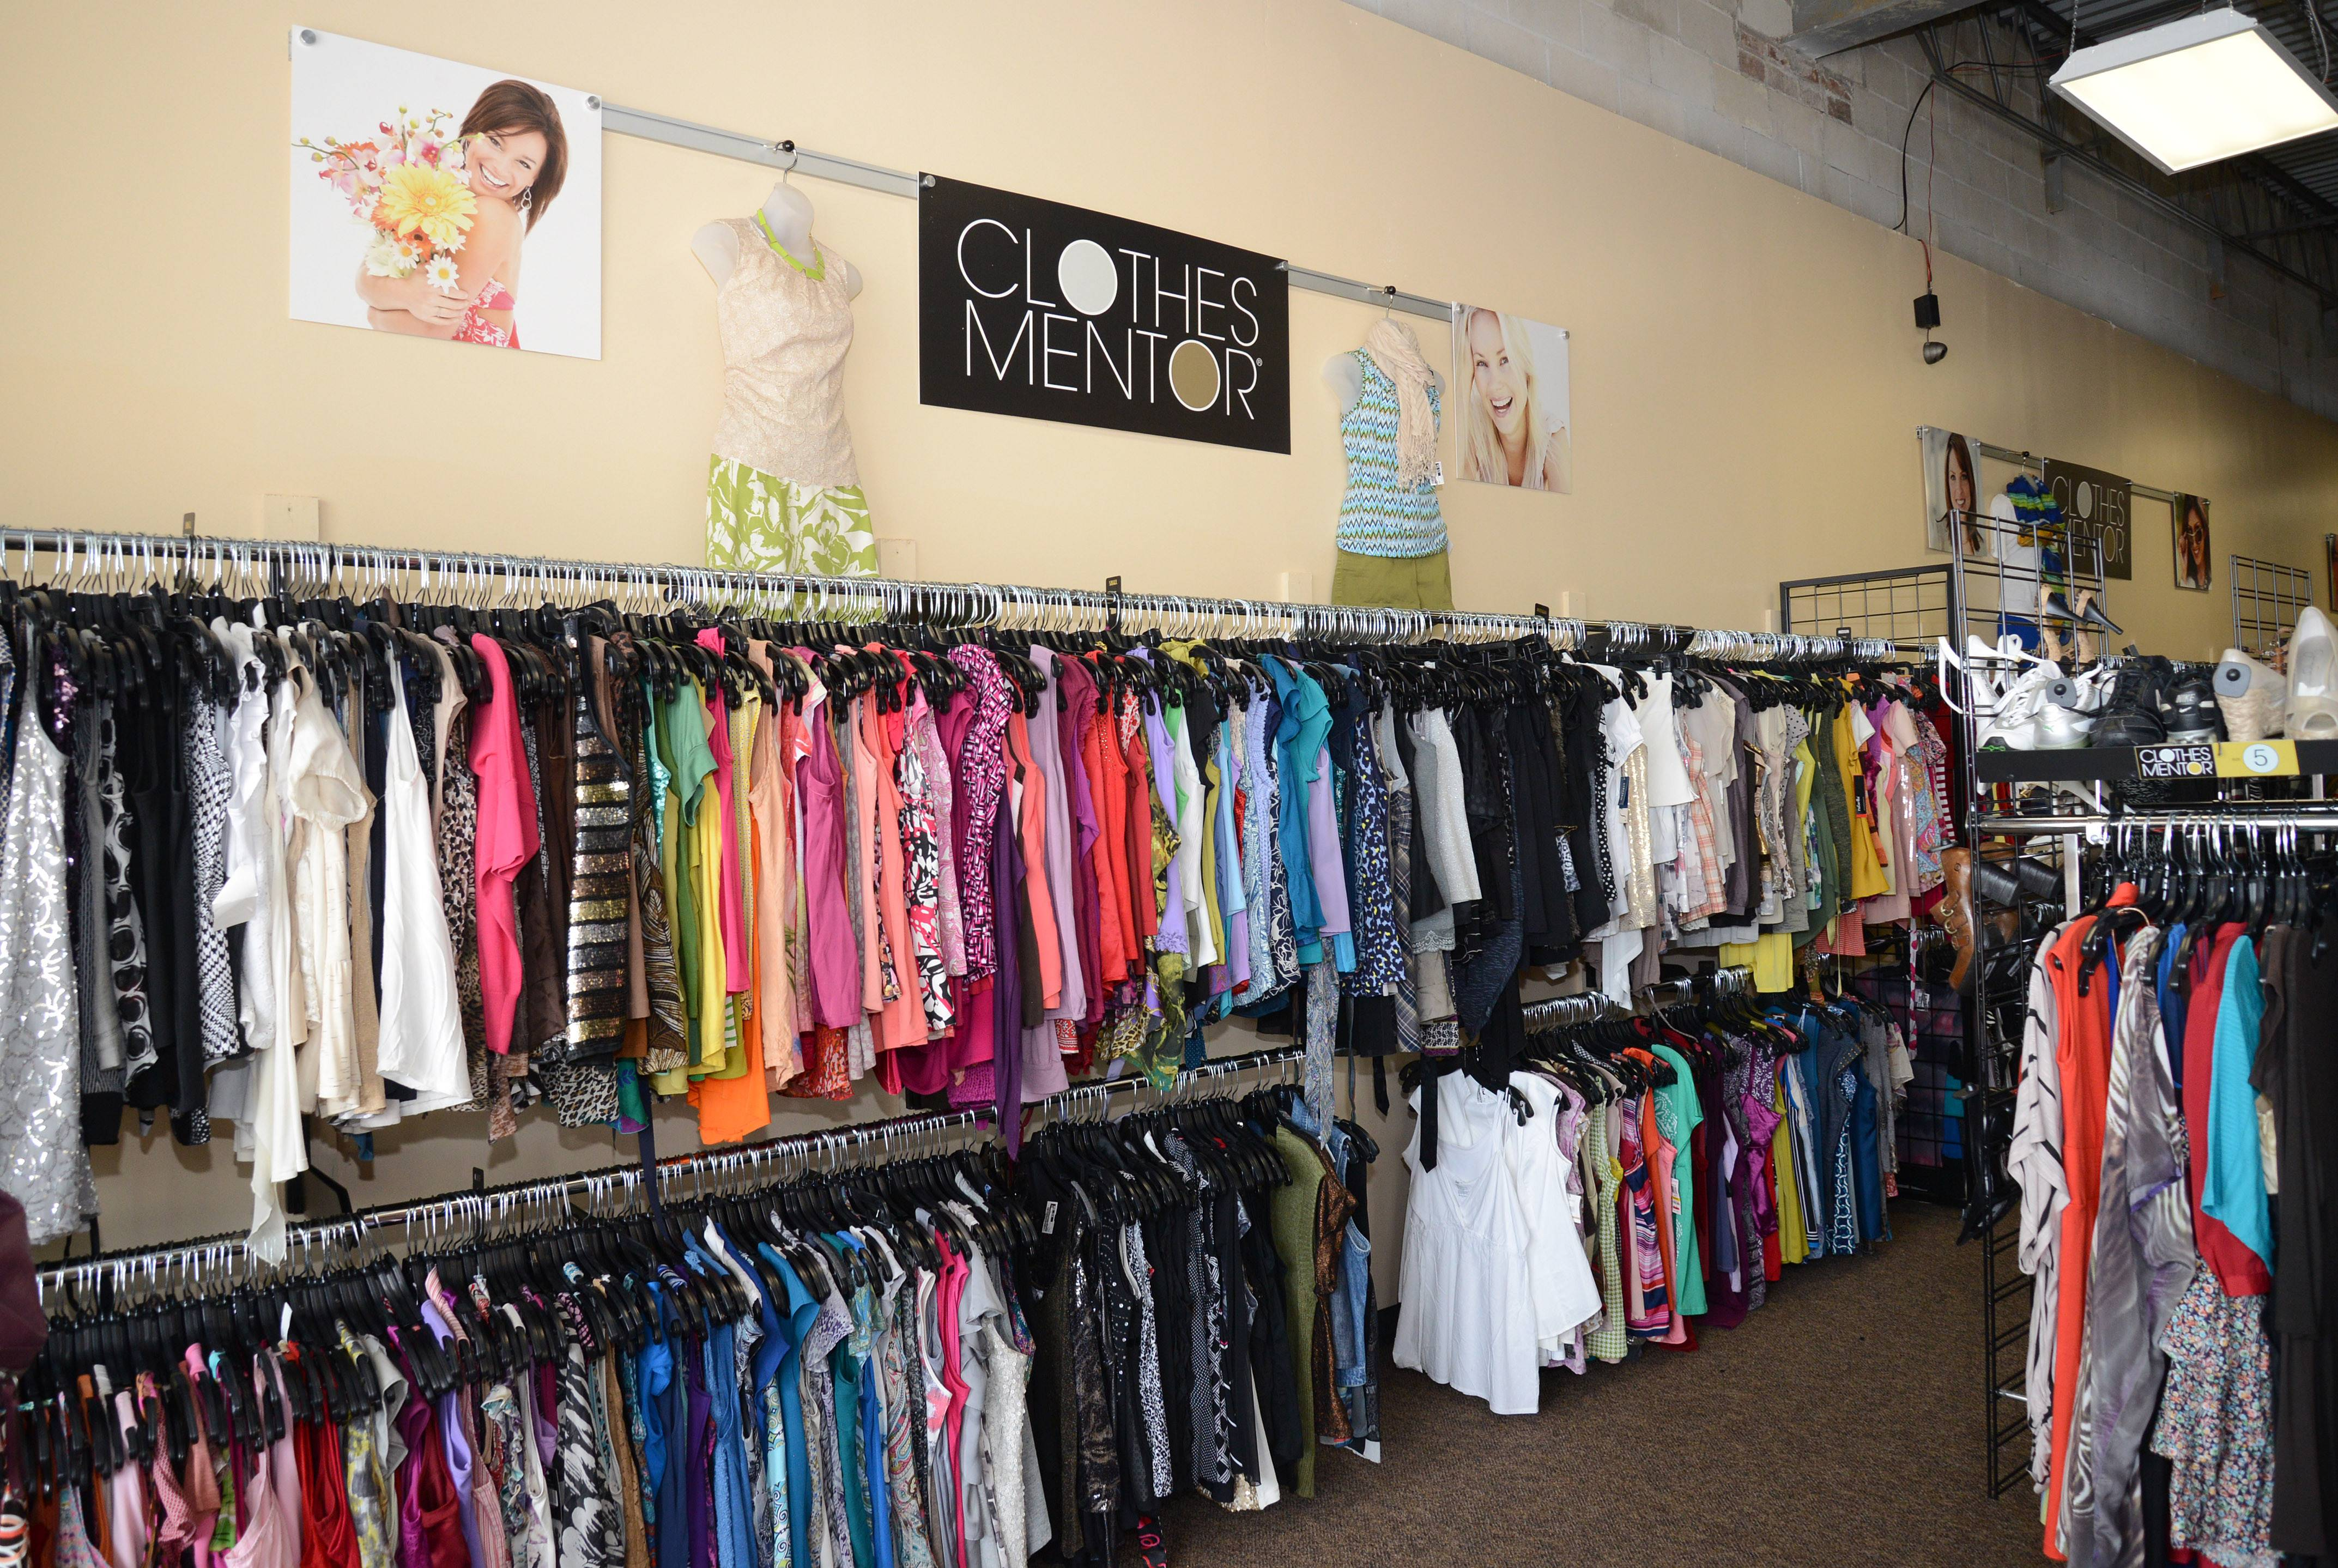 Captivating At Clothes Mentor, The Clothing And Accessories Are Sorted And Sold By  Sizes And Colors